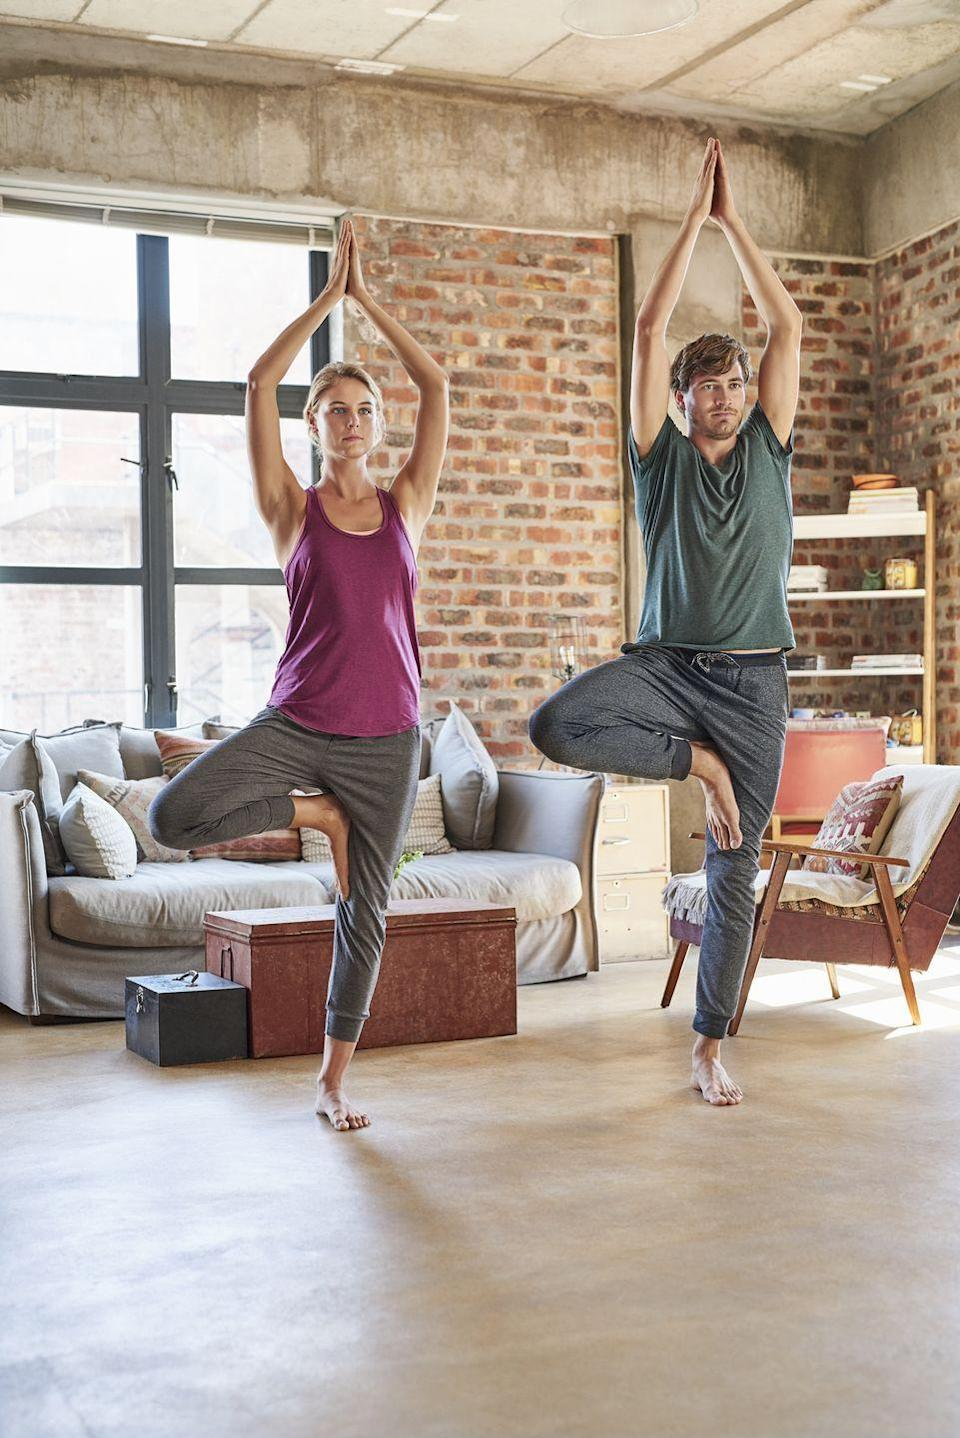 """<p>Roll out your yoga mats and get to stretching for a peaceful, relaxing night. There are many online yoga videos you can use, such as <a href=""""https://yogawithadriene.com/"""" rel=""""nofollow noopener"""" target=""""_blank"""" data-ylk=""""slk:Yoga with Adriene"""" class=""""link rapid-noclick-resp"""">Yoga with Adriene</a>, which offers free tutorials.</p><p><a class=""""link rapid-noclick-resp"""" href=""""https://www.amazon.com/BalanceFrom-Purpose-Non-Slip-Exercise-Carrying/dp/B01IZDFWRE/?tag=syn-yahoo-20&ascsubtag=%5Bartid%7C10050.g.30445302%5Bsrc%7Cyahoo-us"""" rel=""""nofollow noopener"""" target=""""_blank"""" data-ylk=""""slk:SHOP YOGA MATS"""">SHOP YOGA MATS</a></p>"""